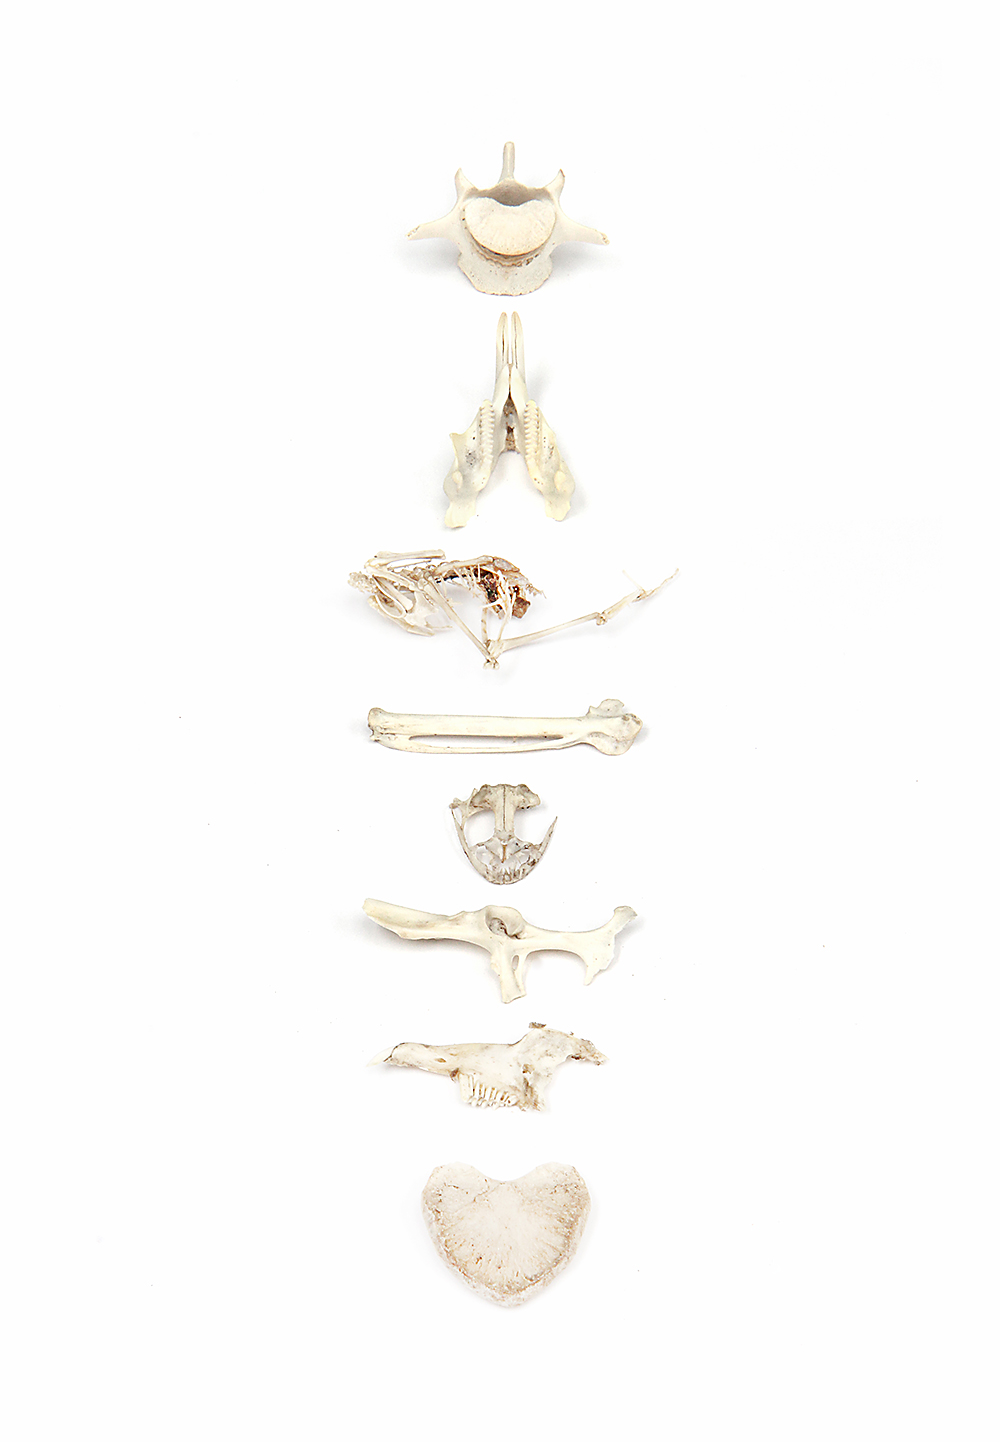 bone-collection-2.jpg